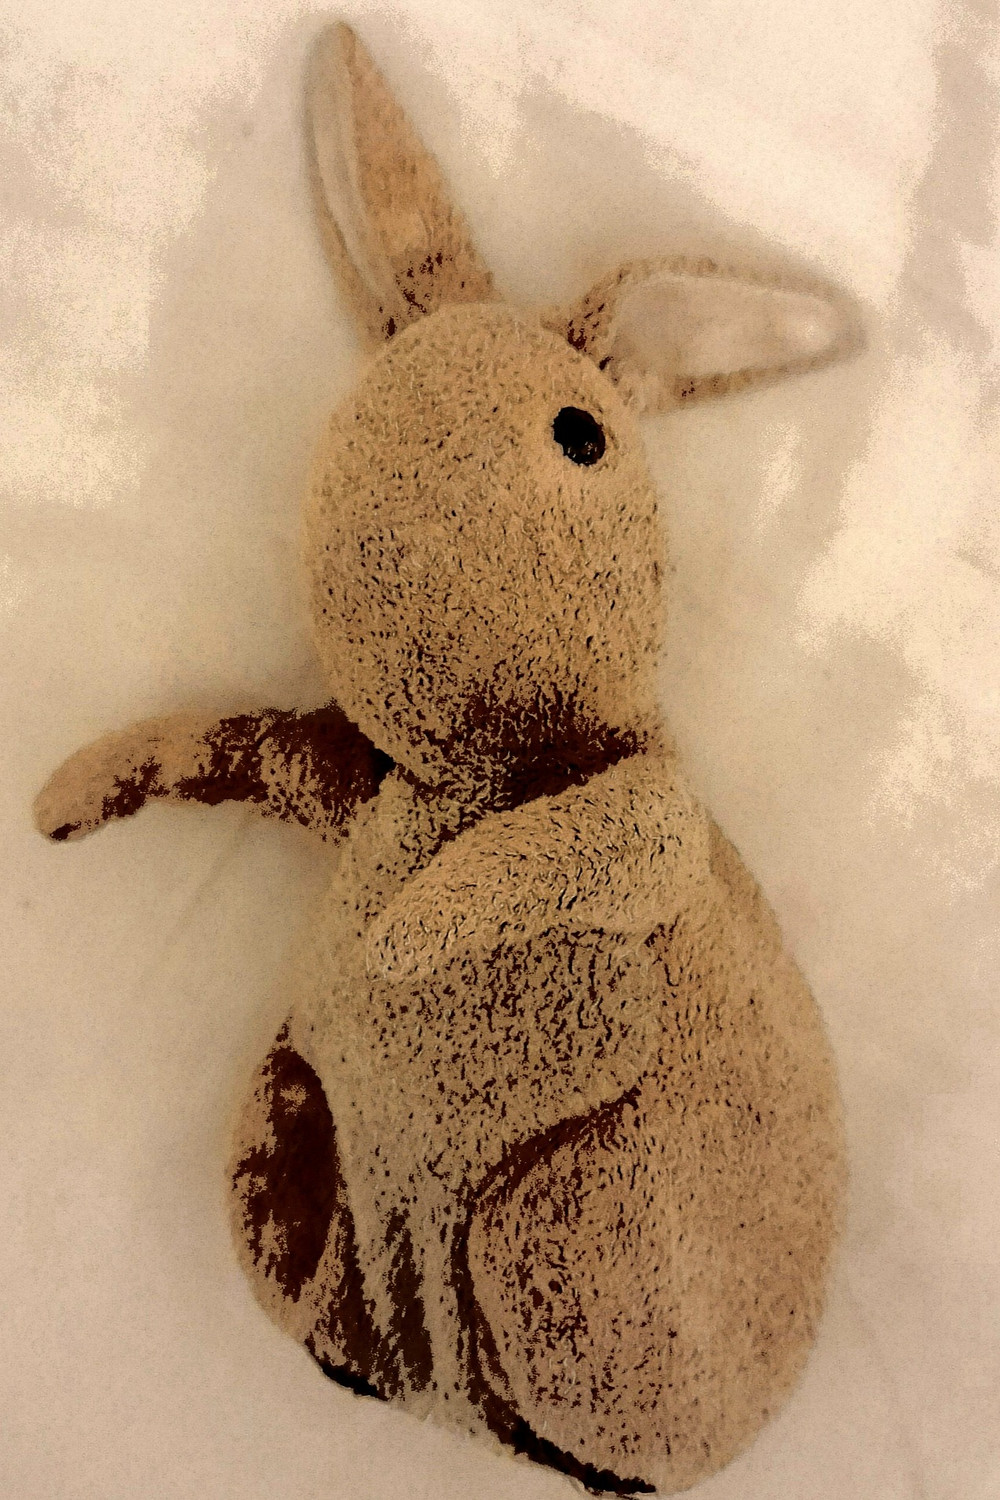 An old stuffed bunny rabbit teddy, lain on a white duvet